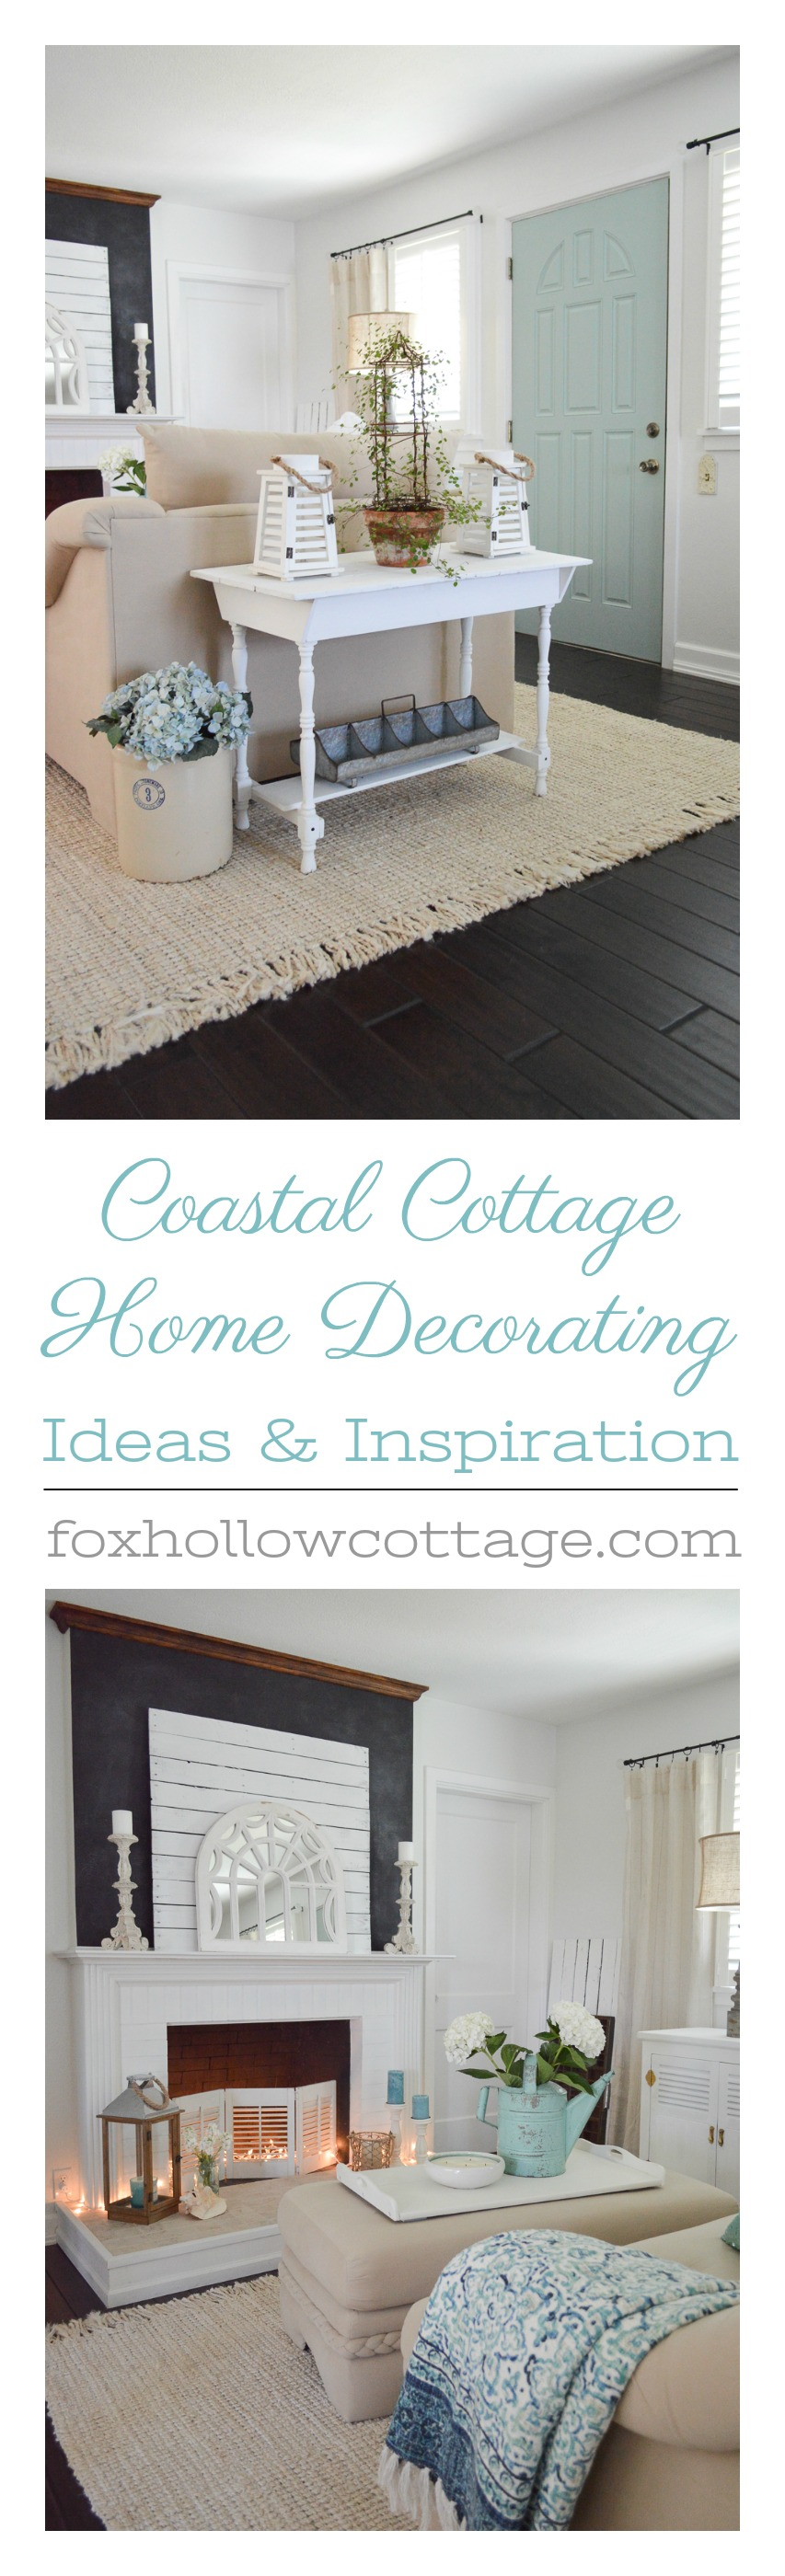 Home decorating ideas with coastal, cottage-farmhouse style and vintage touches www.foxhollowcottage.com